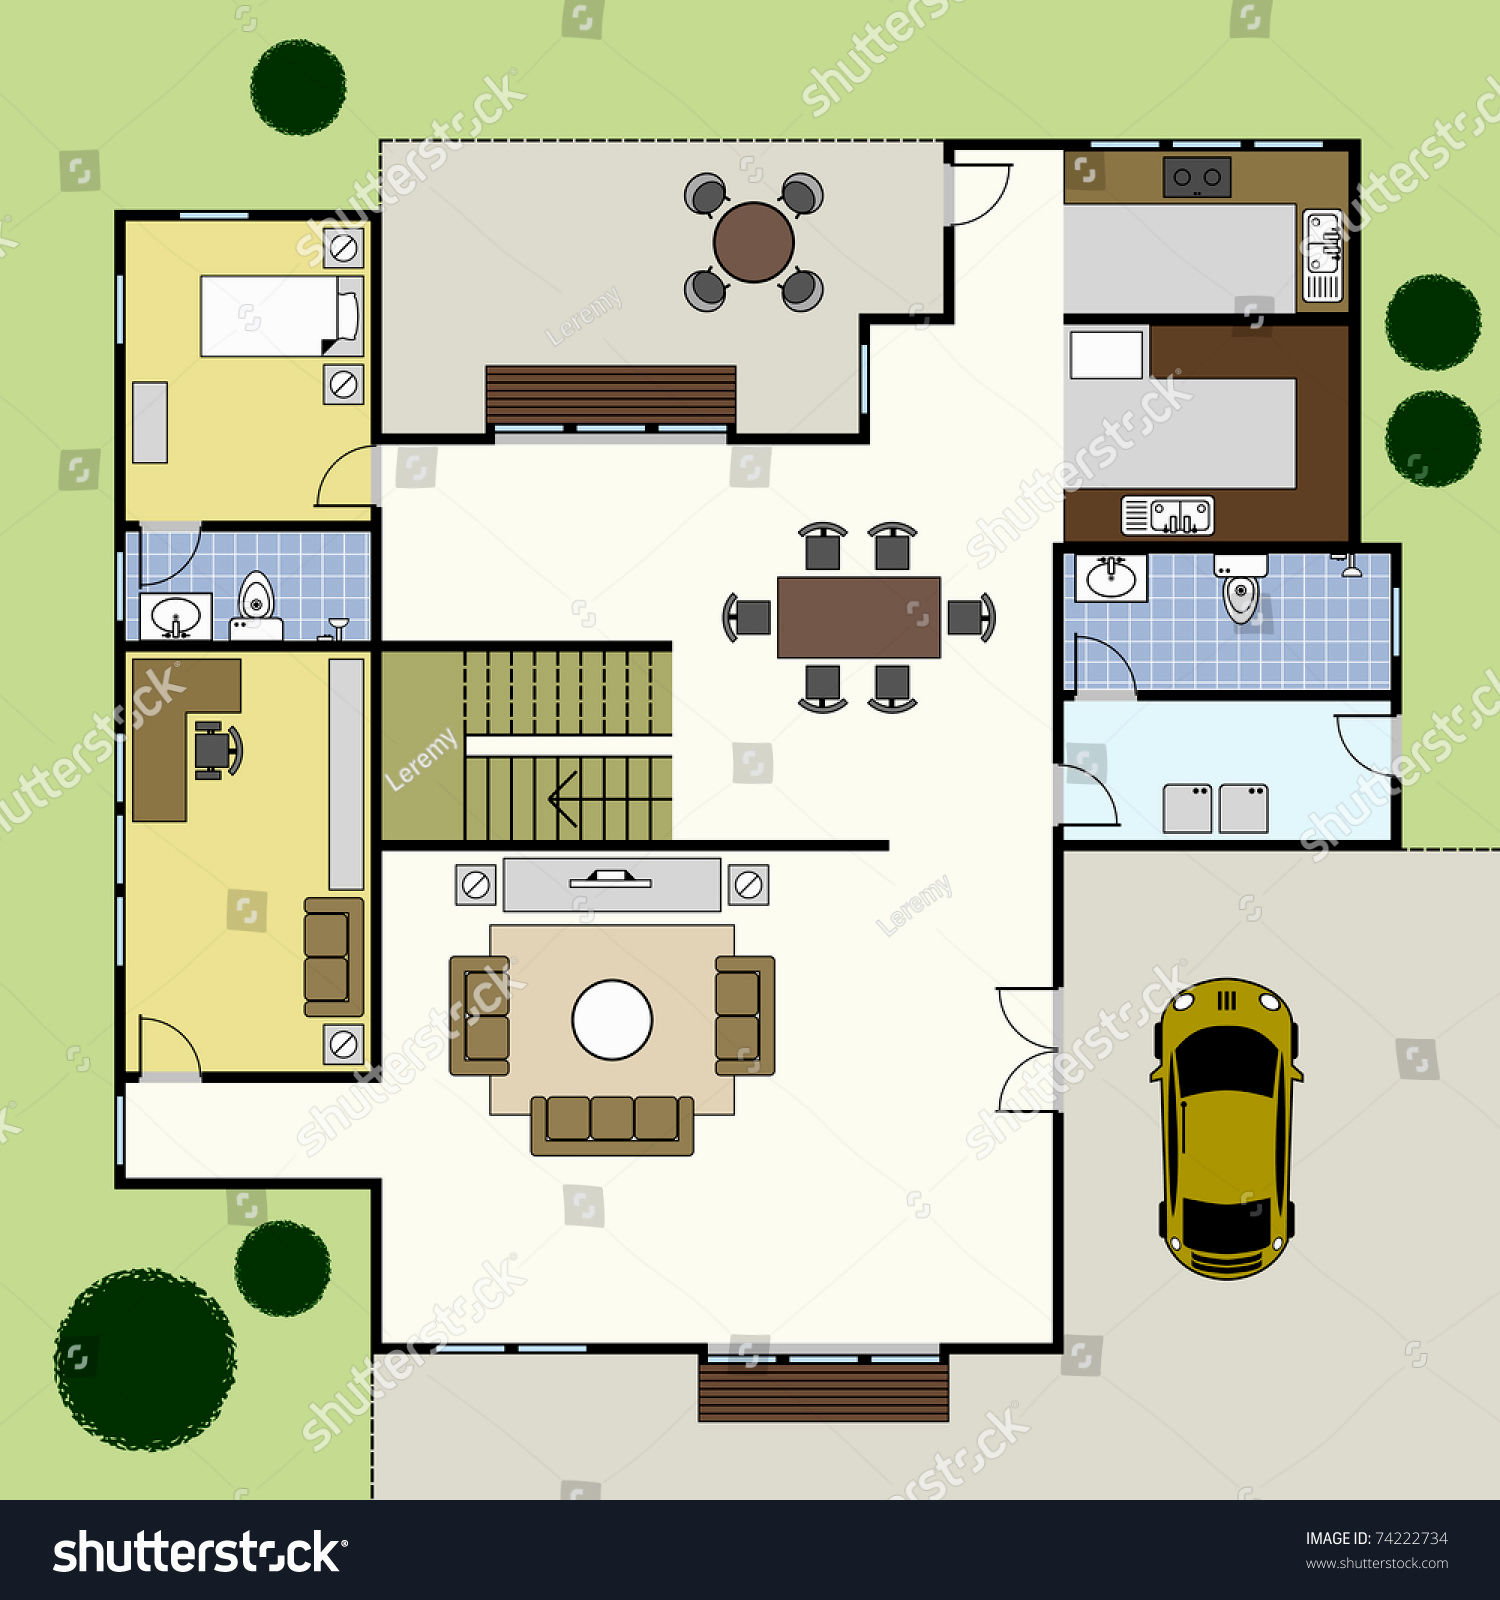 cool small bathroom floor plans construction-Finest Small Bathroom Floor Plans Architecture